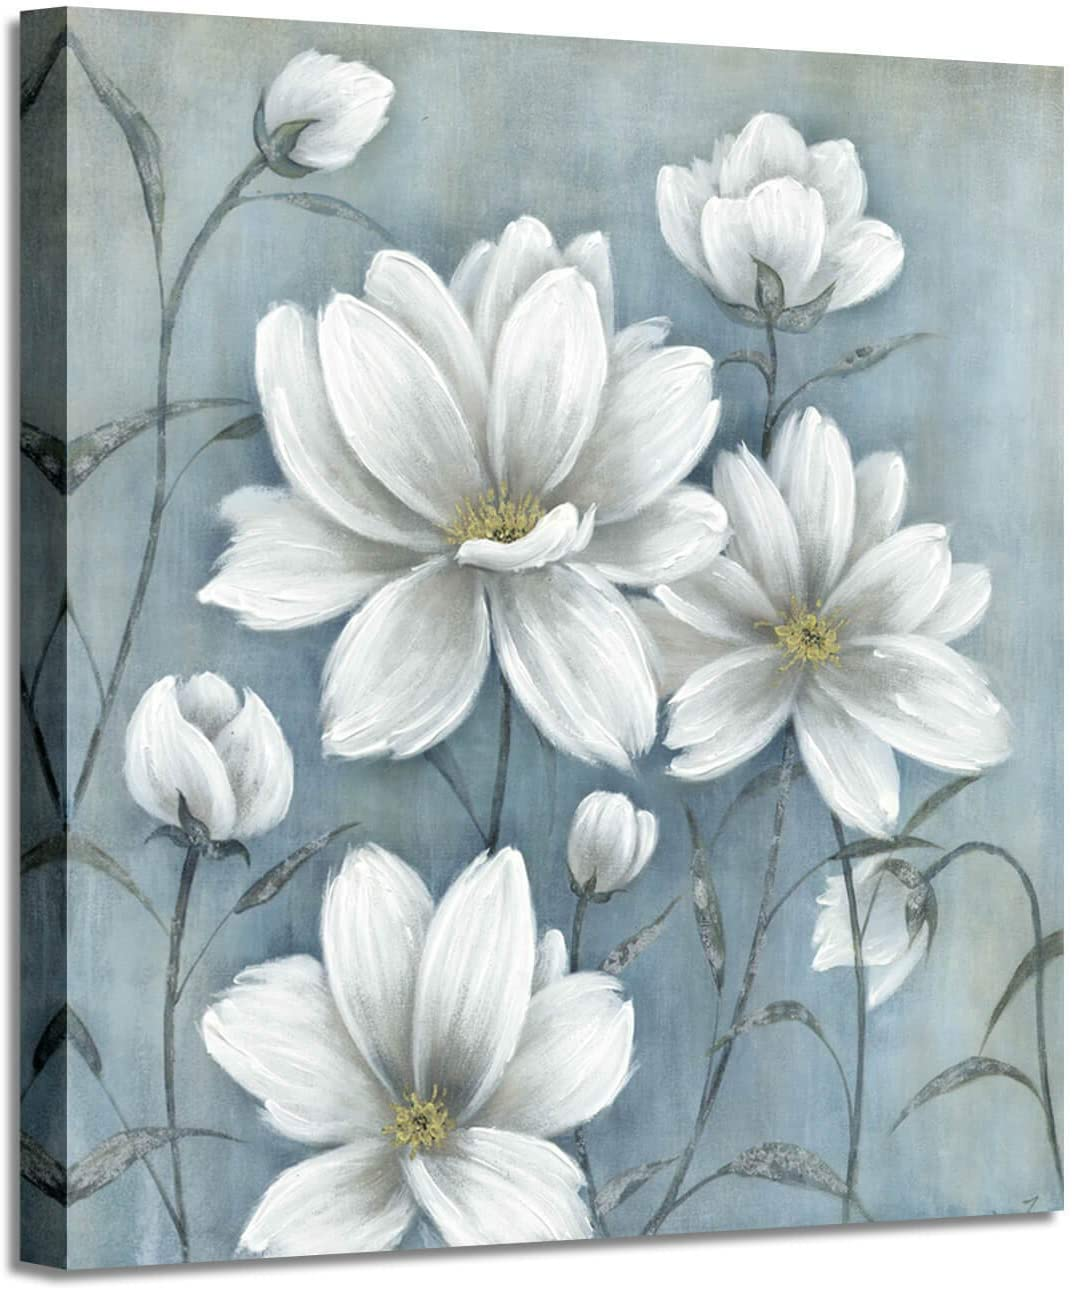 Floral Canvas Picture Wall Art: Magnolia Flowers Blossom Painting Wall Art for Bedroom (36'' x 36'' x 1 Panel)